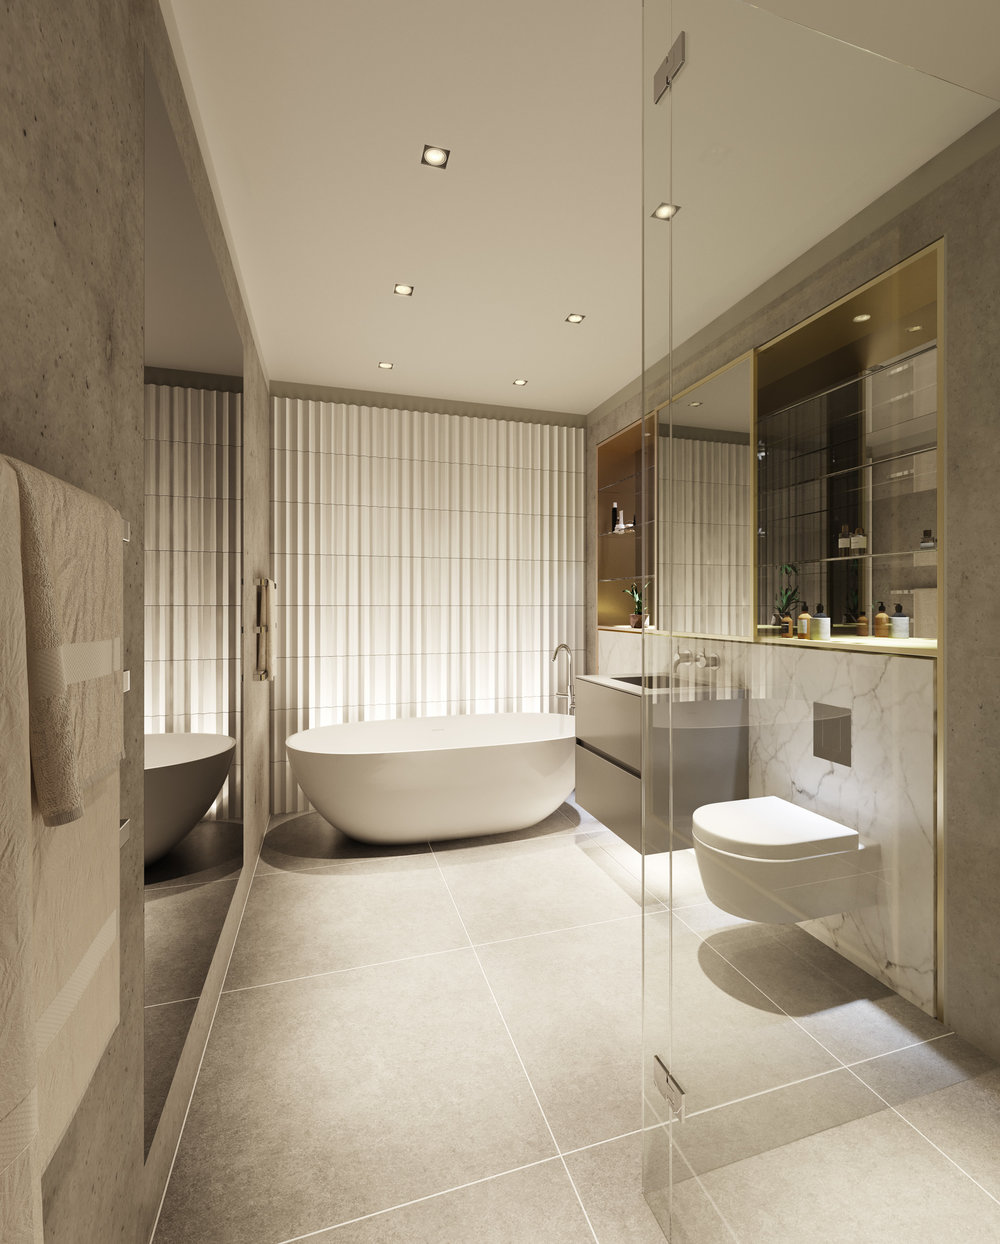 04_Master-bathroom_final-image-RGB.jpg